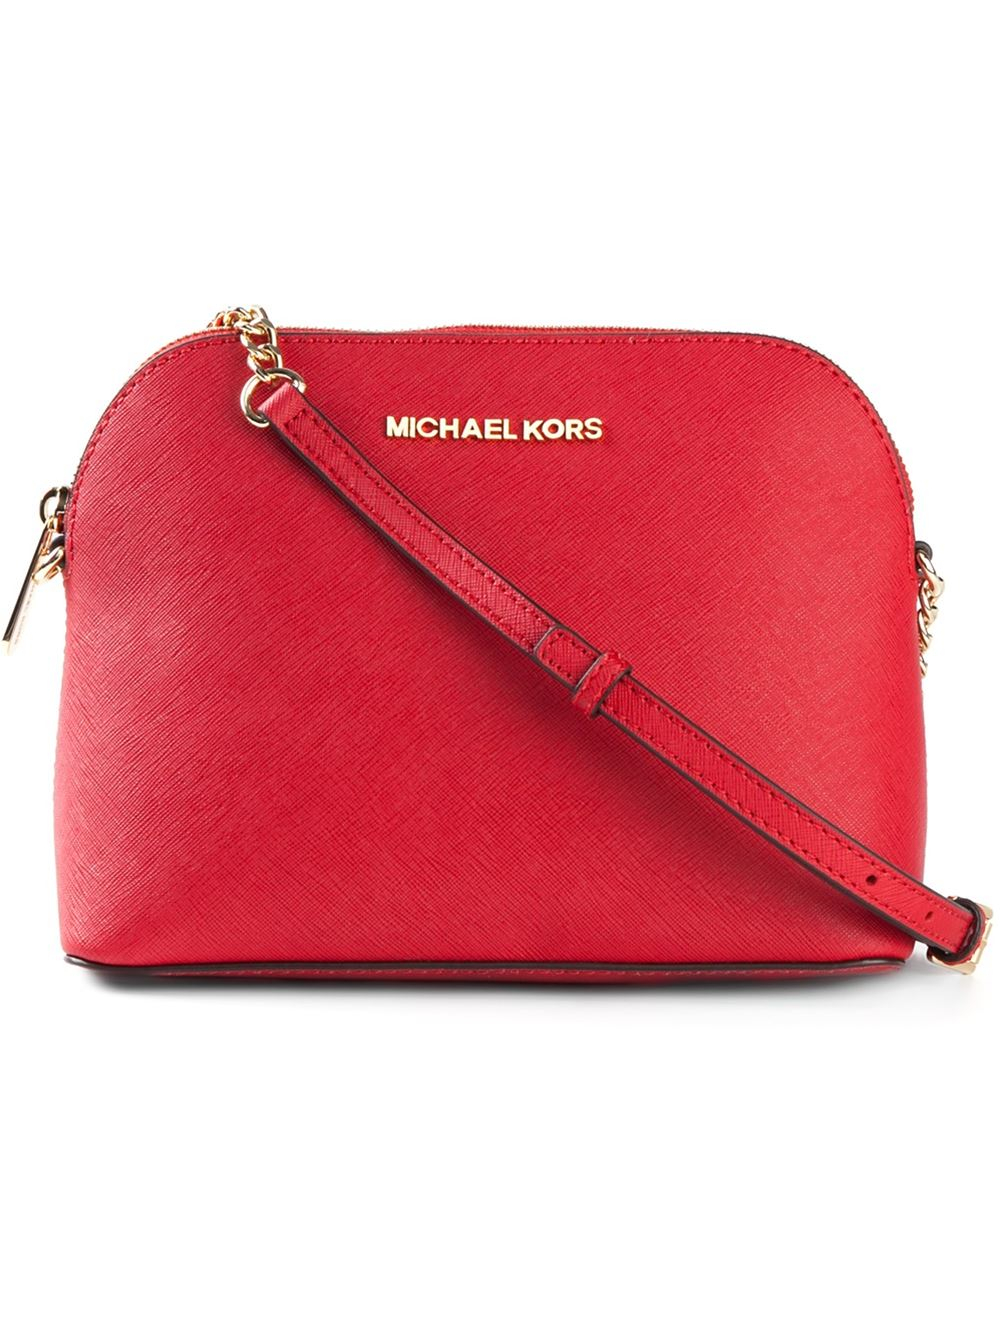 77fad53f8833 Gallery. Previously sold at: Farfetch · Women's Michael Kors Cindy